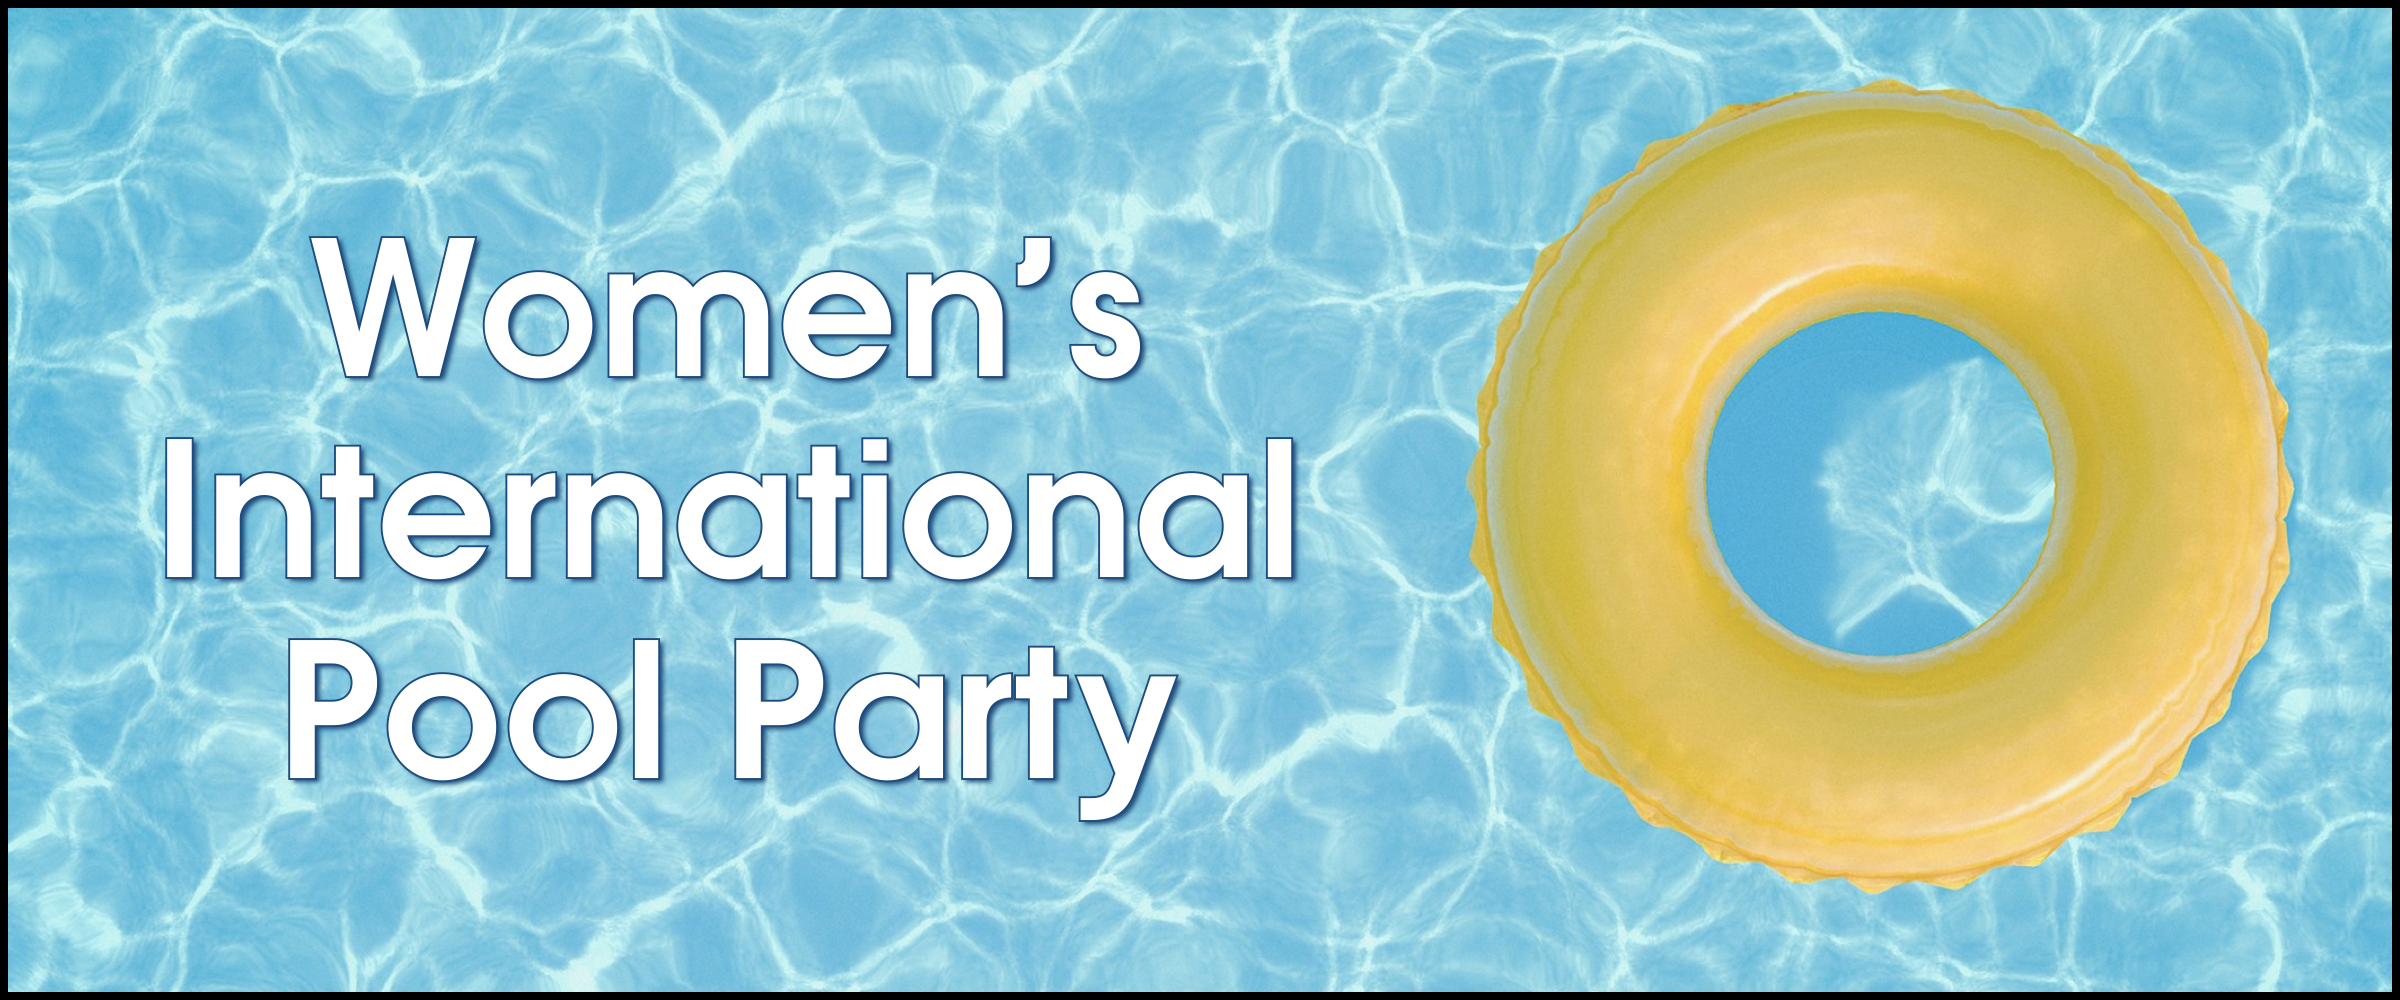 Women's International Pool Party.001.png